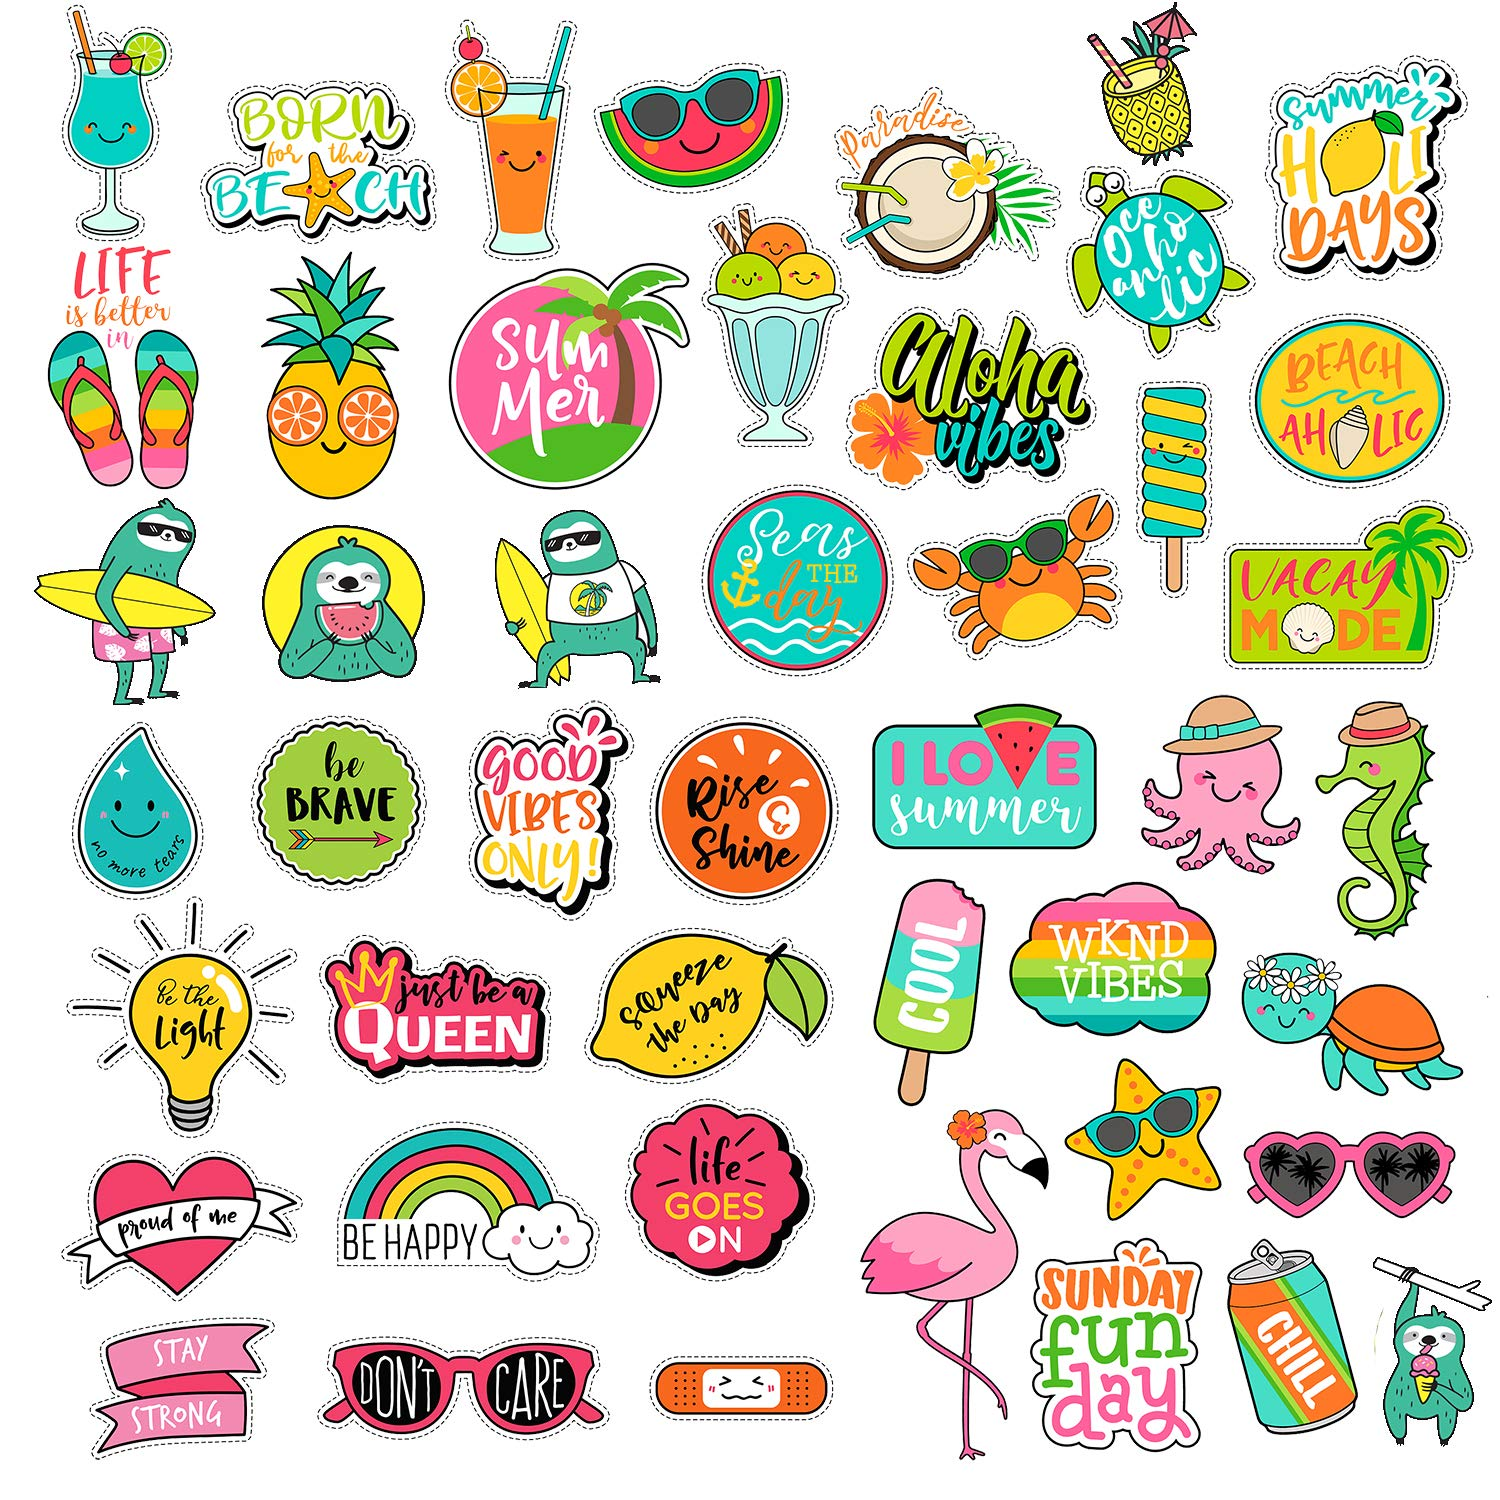 Aesthetic Stickers 47pcs Lovely Trendy Cute Laptop And Water Bottles Scrapbooking Decal Sticker Pack For Teens Girls Feminists Women Waterproof